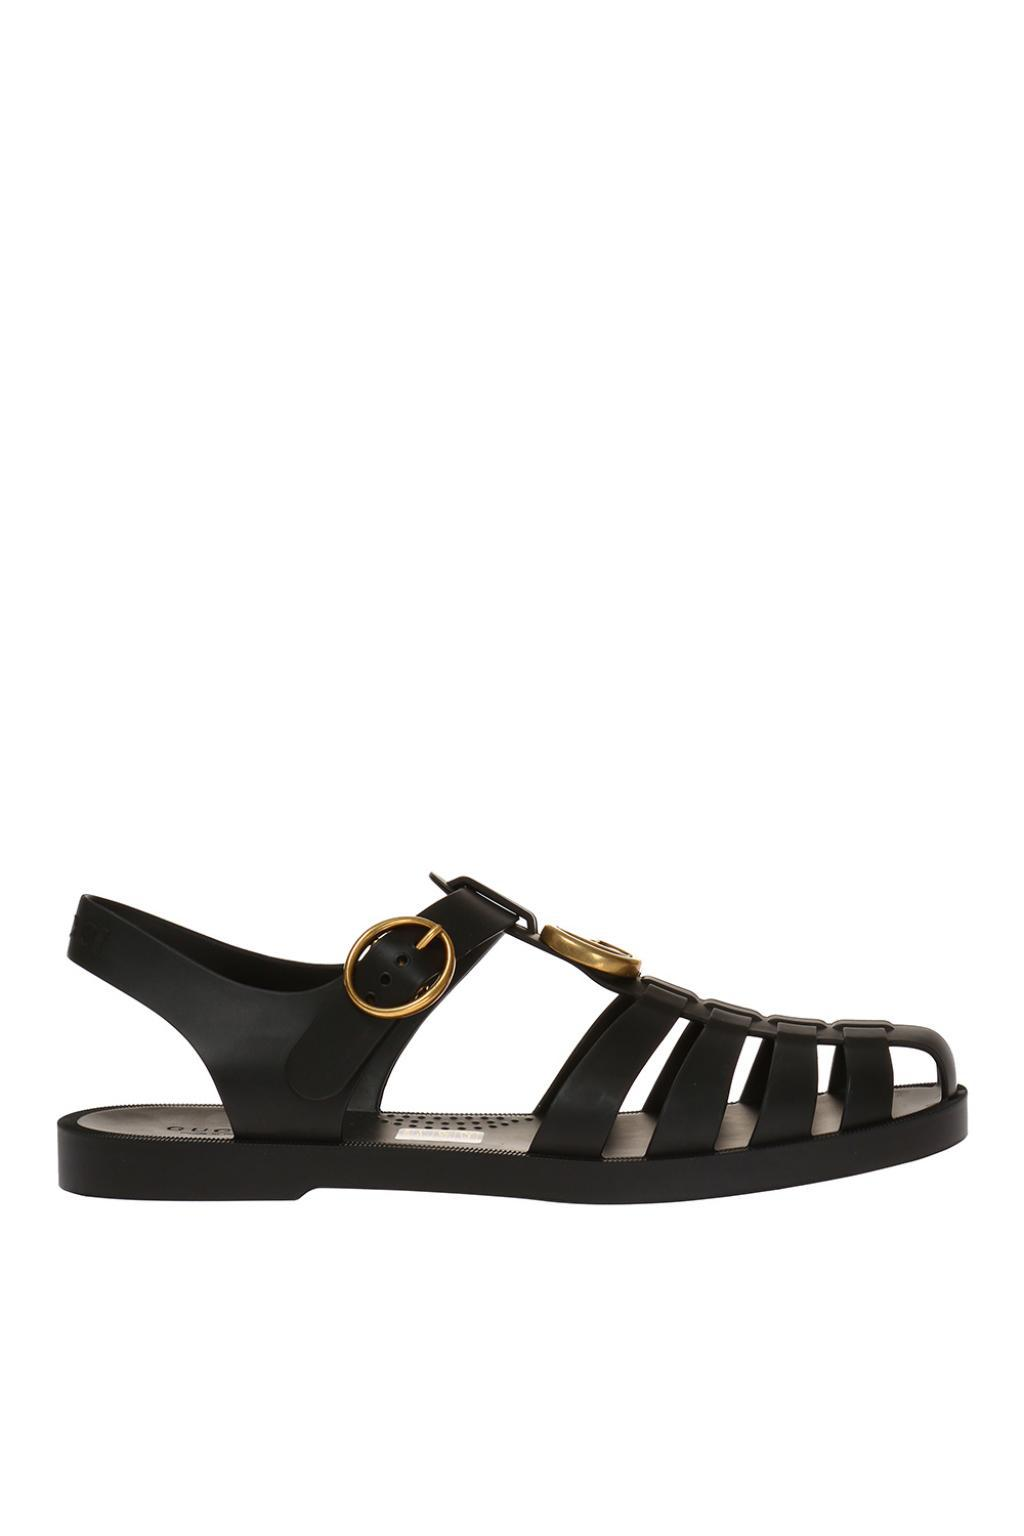 1ce54726569c Lyst - Gucci Metal Logo Rubber Sandals in Black for Men